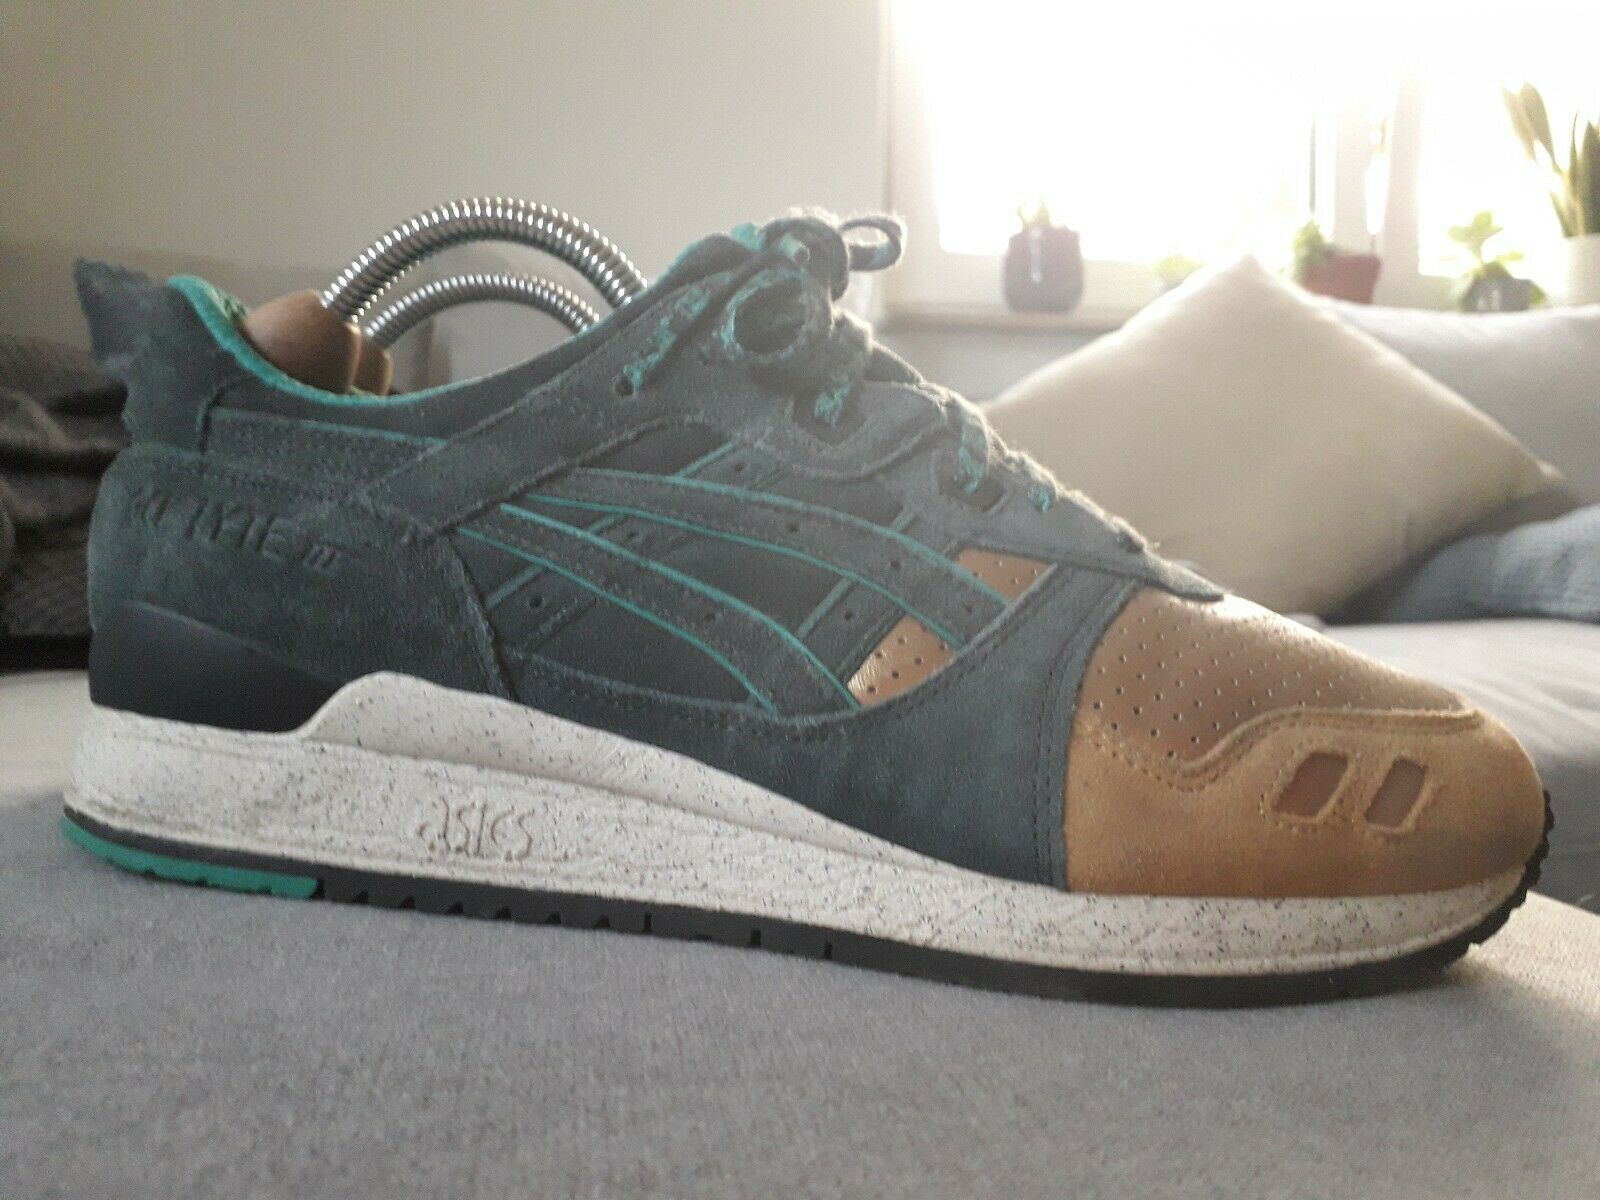 Concepts x Asics Gel Lyte 3 III Three Lies 3 fieg Cncpts US 10 EU43 vnds 9 10